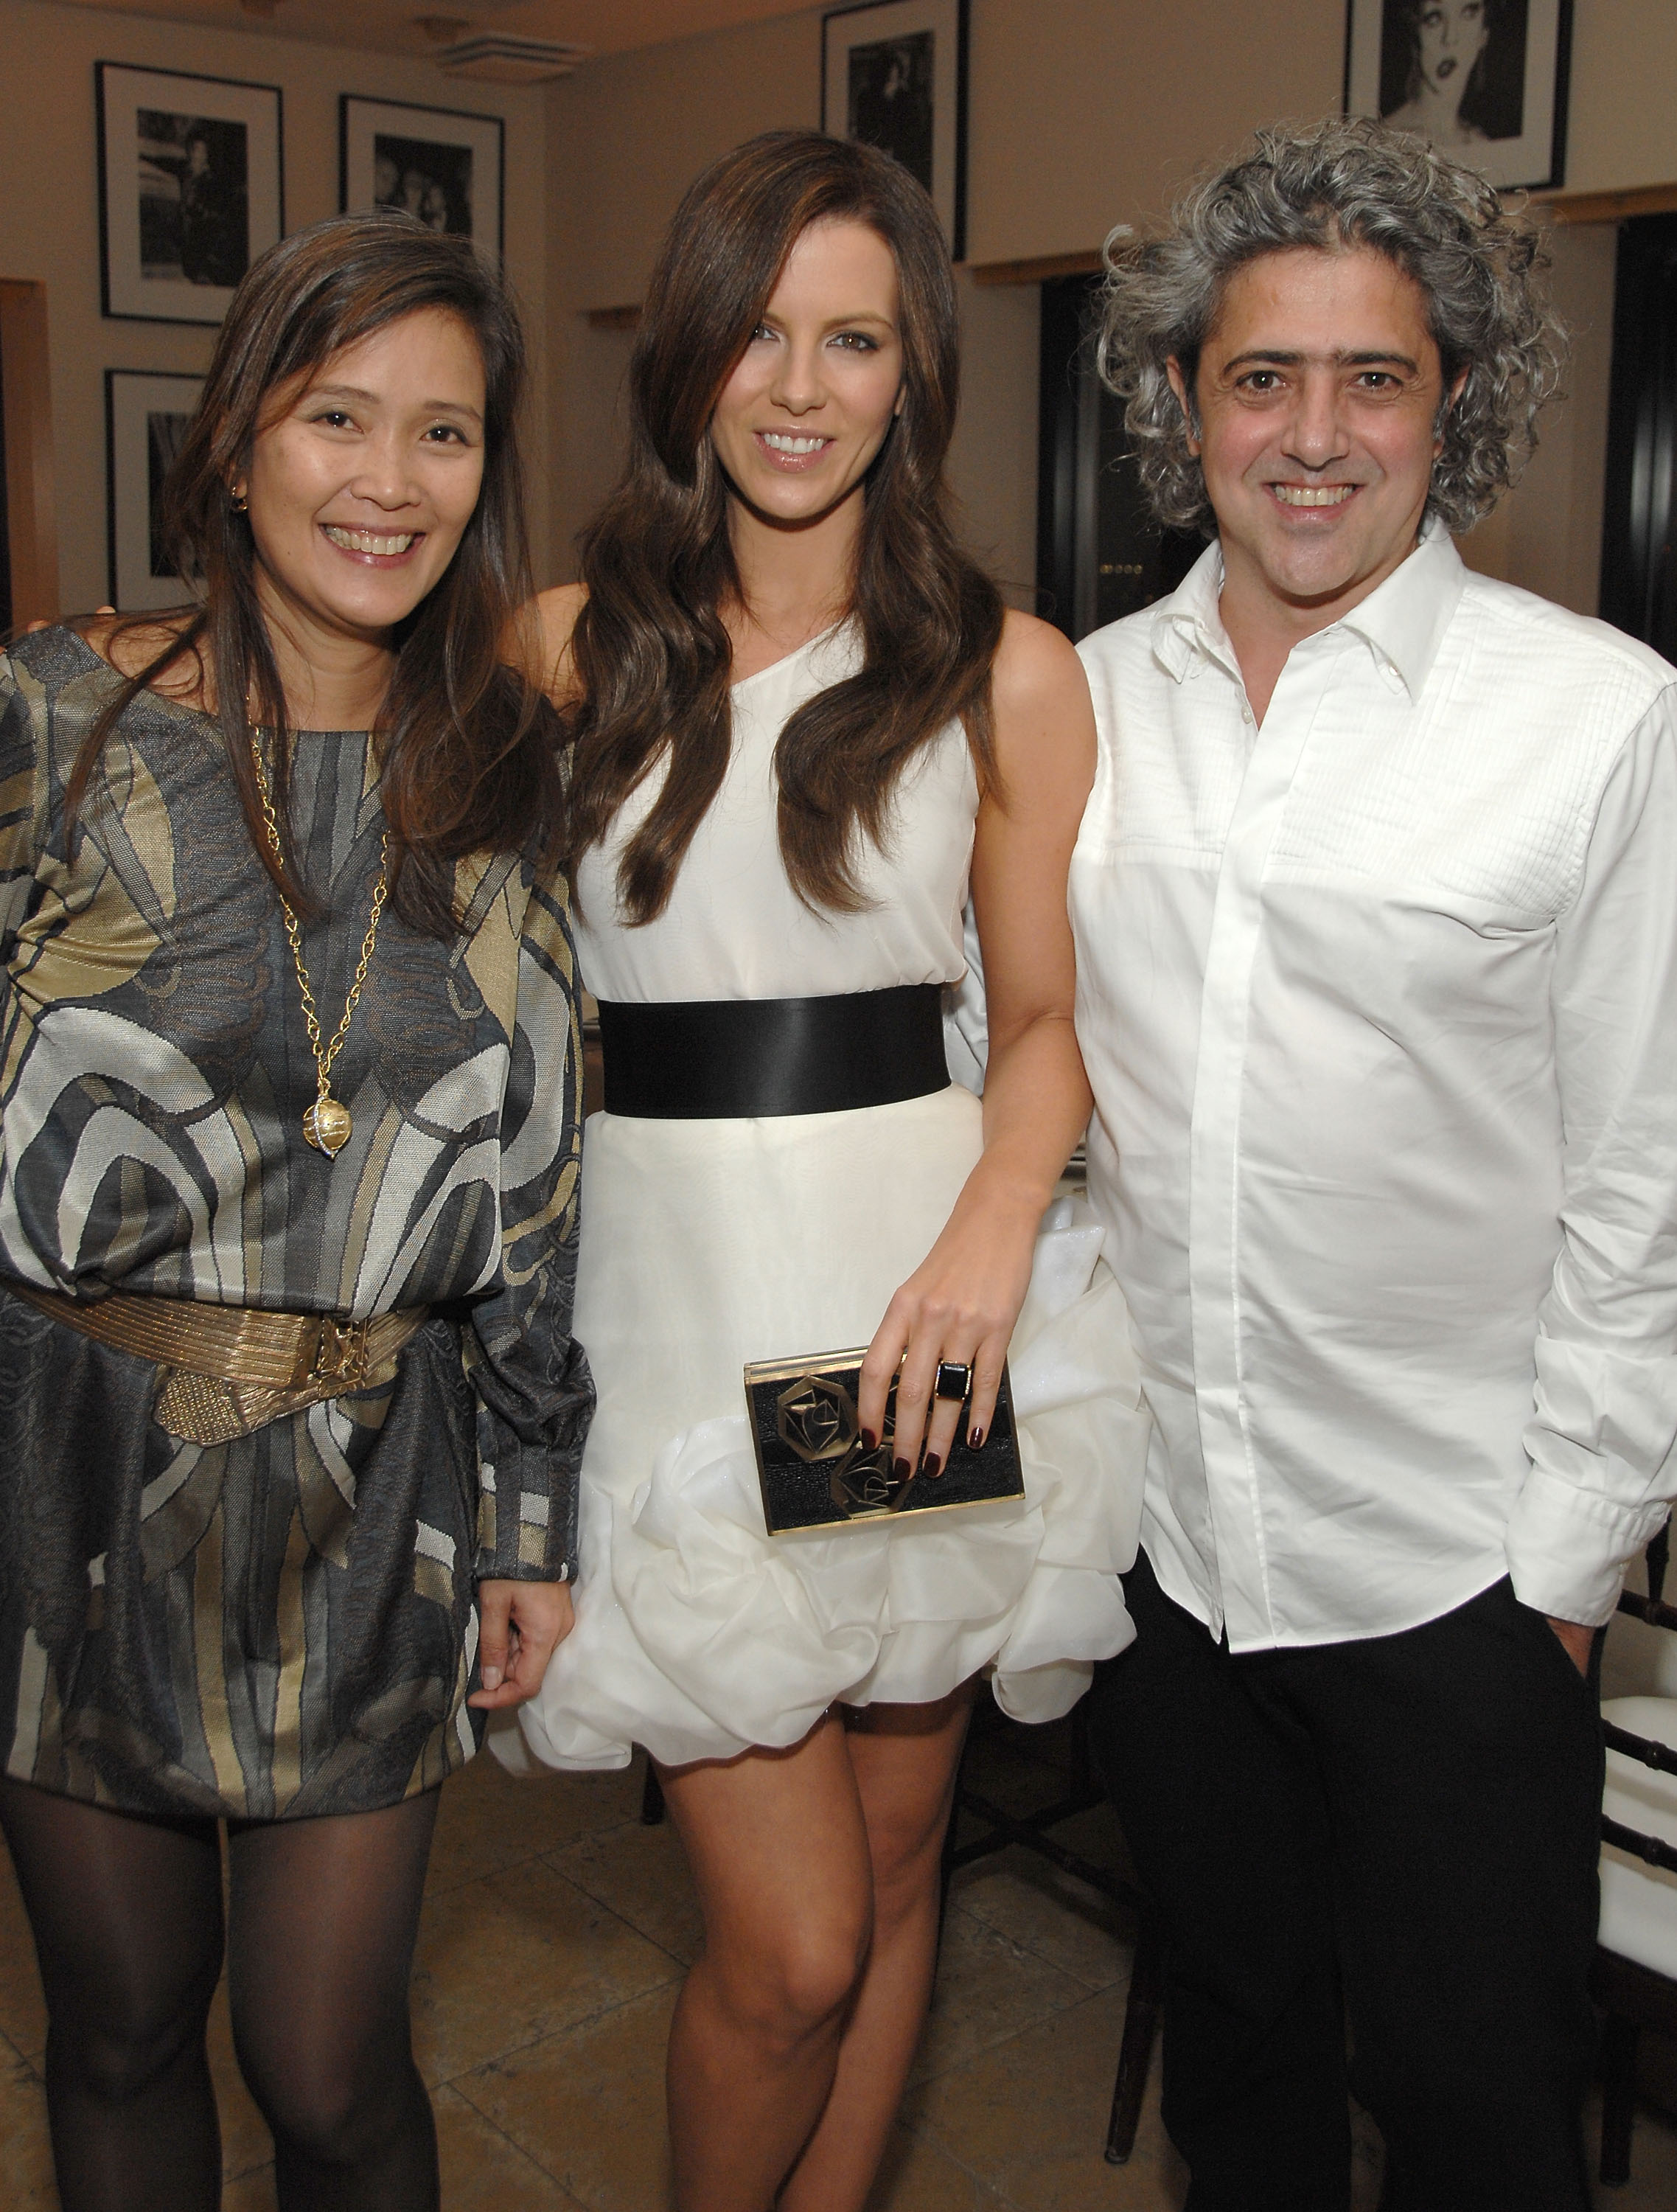 91542_Celebutopia-Kate_Beckinsale-R8Y_Augousti_and_Barneys_dinner_for_Nothing_But_The_Truth-08_122_885lo.jpg